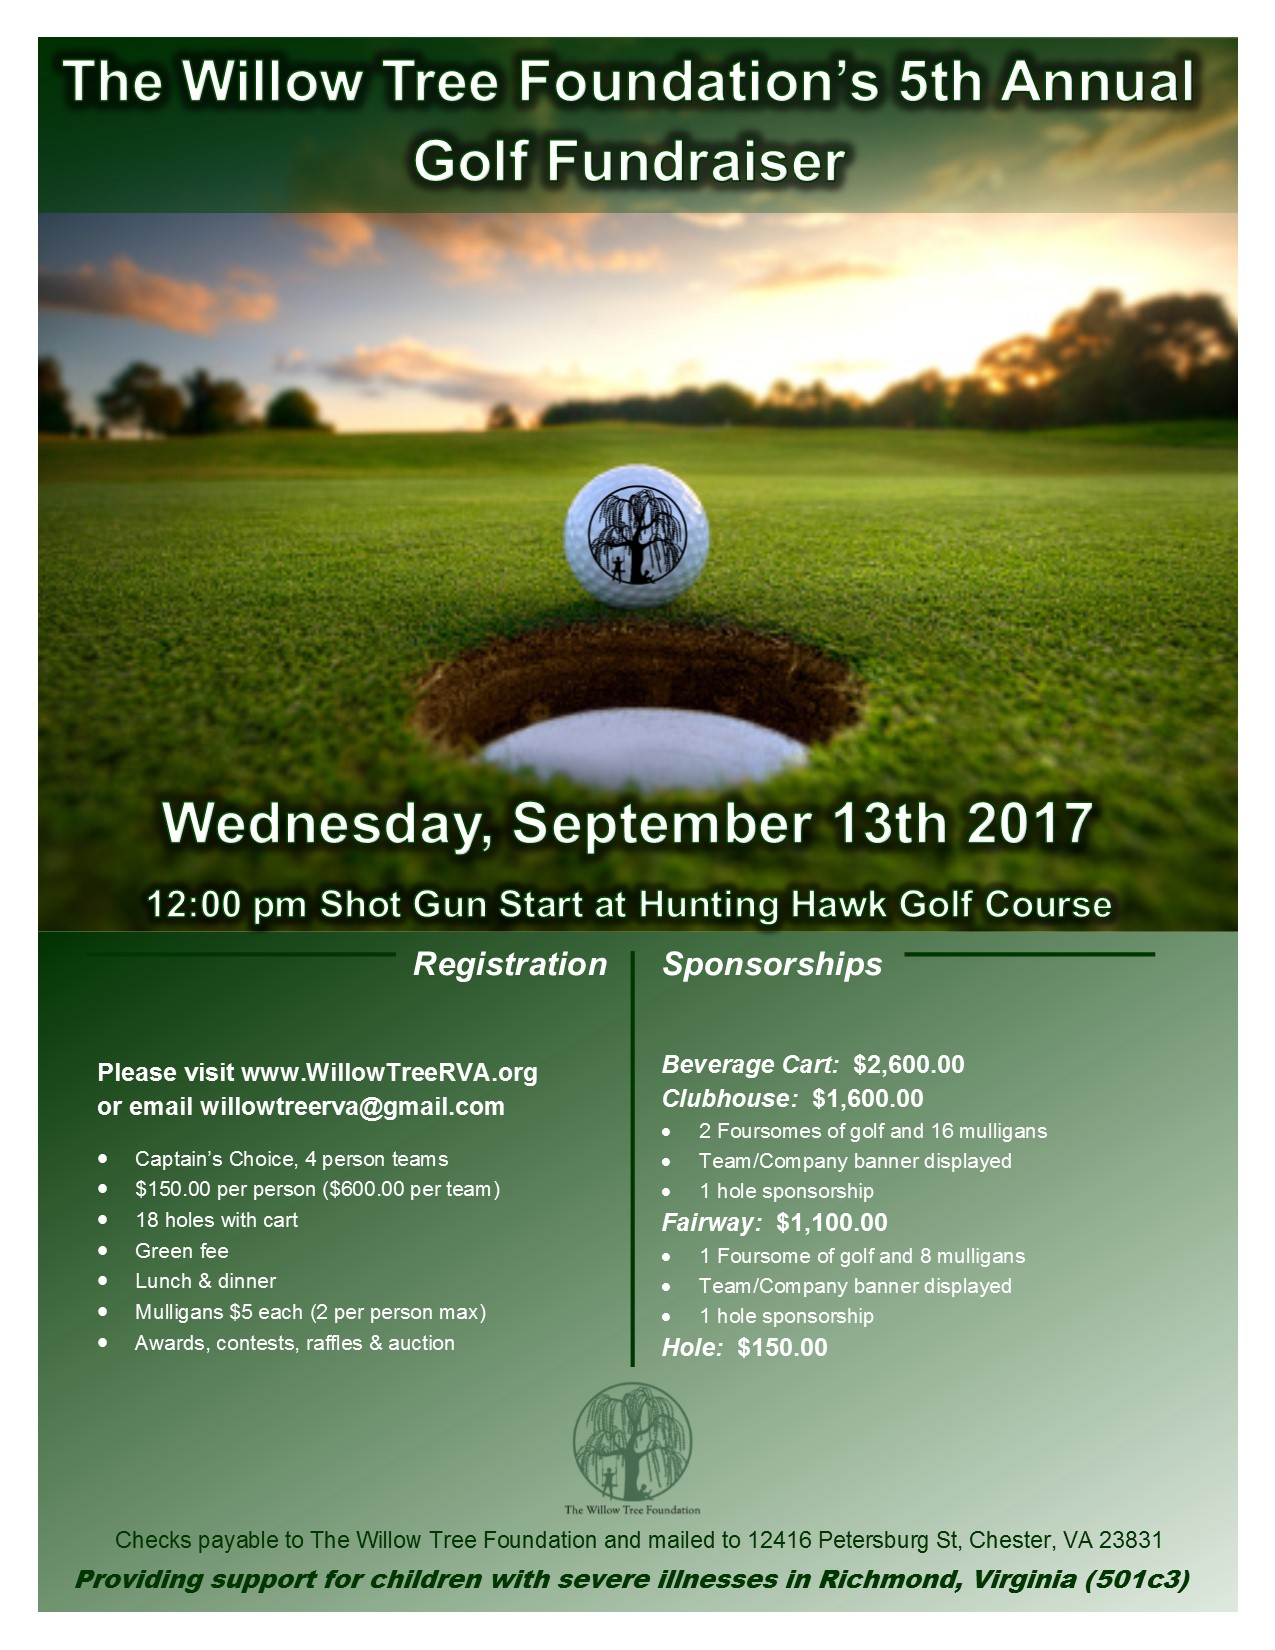 The Fifth Annual Logan Wyatt Friends Golf Tournament U2013 September 13, 2017